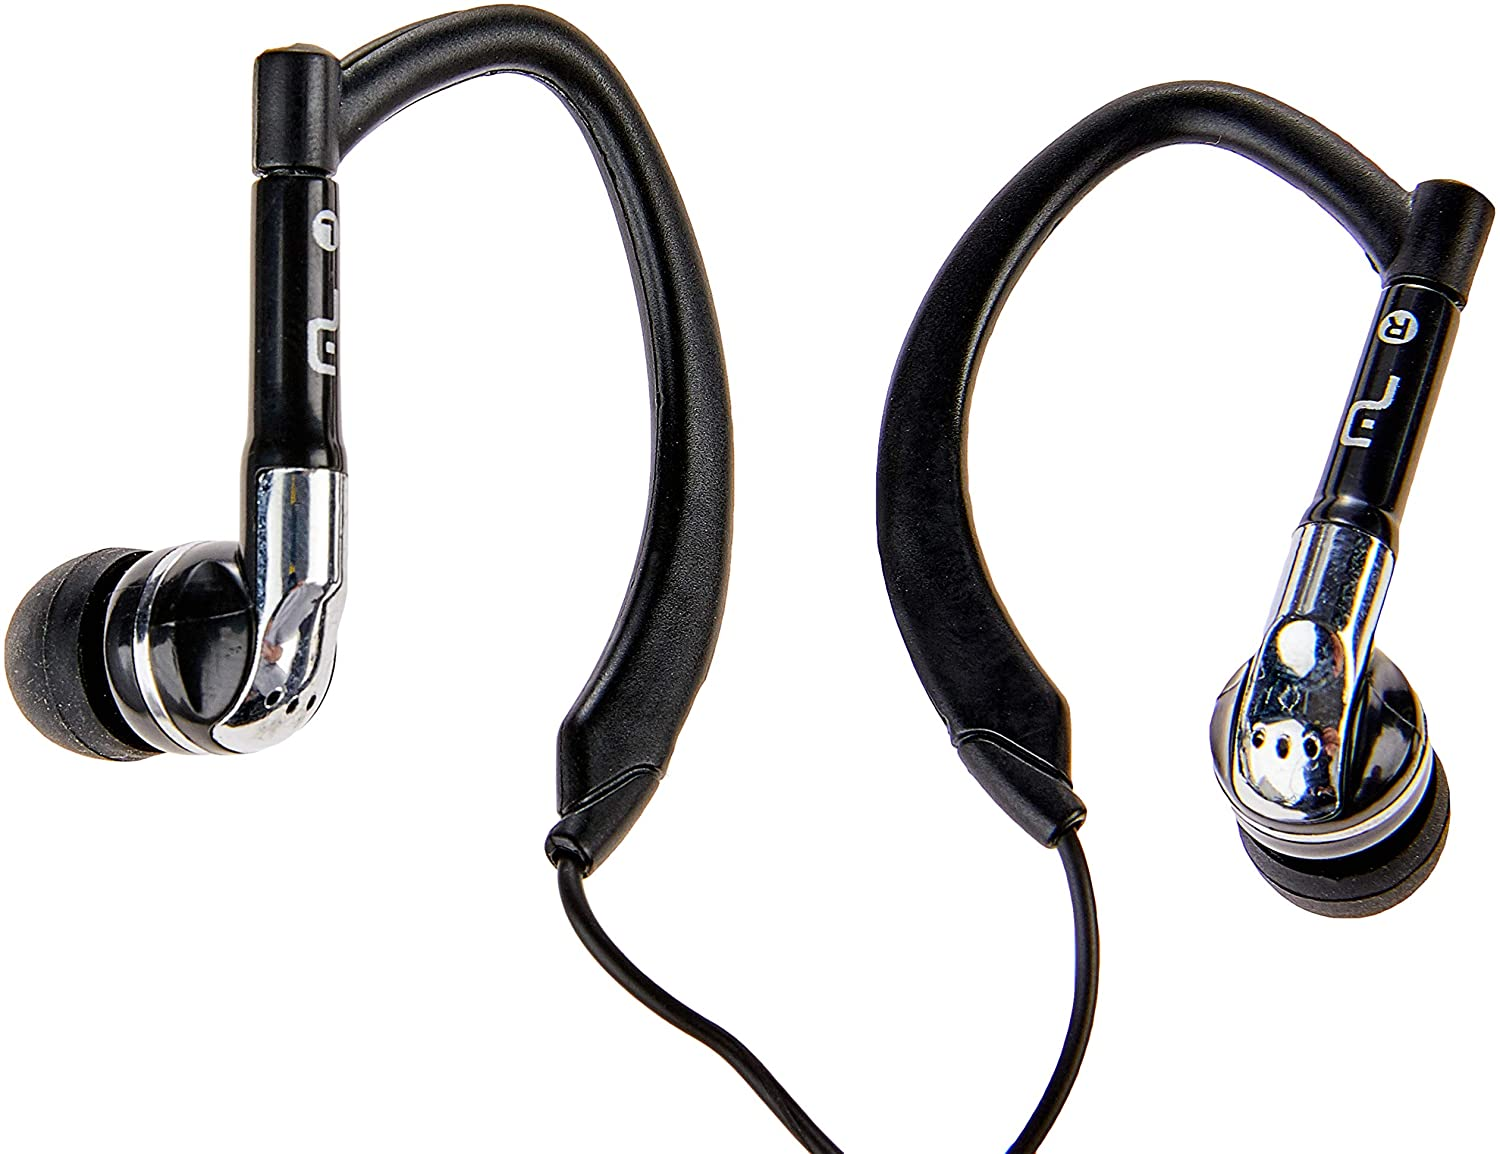 Fone Auricular P2 Earhook Preto Ph019 Multilaser